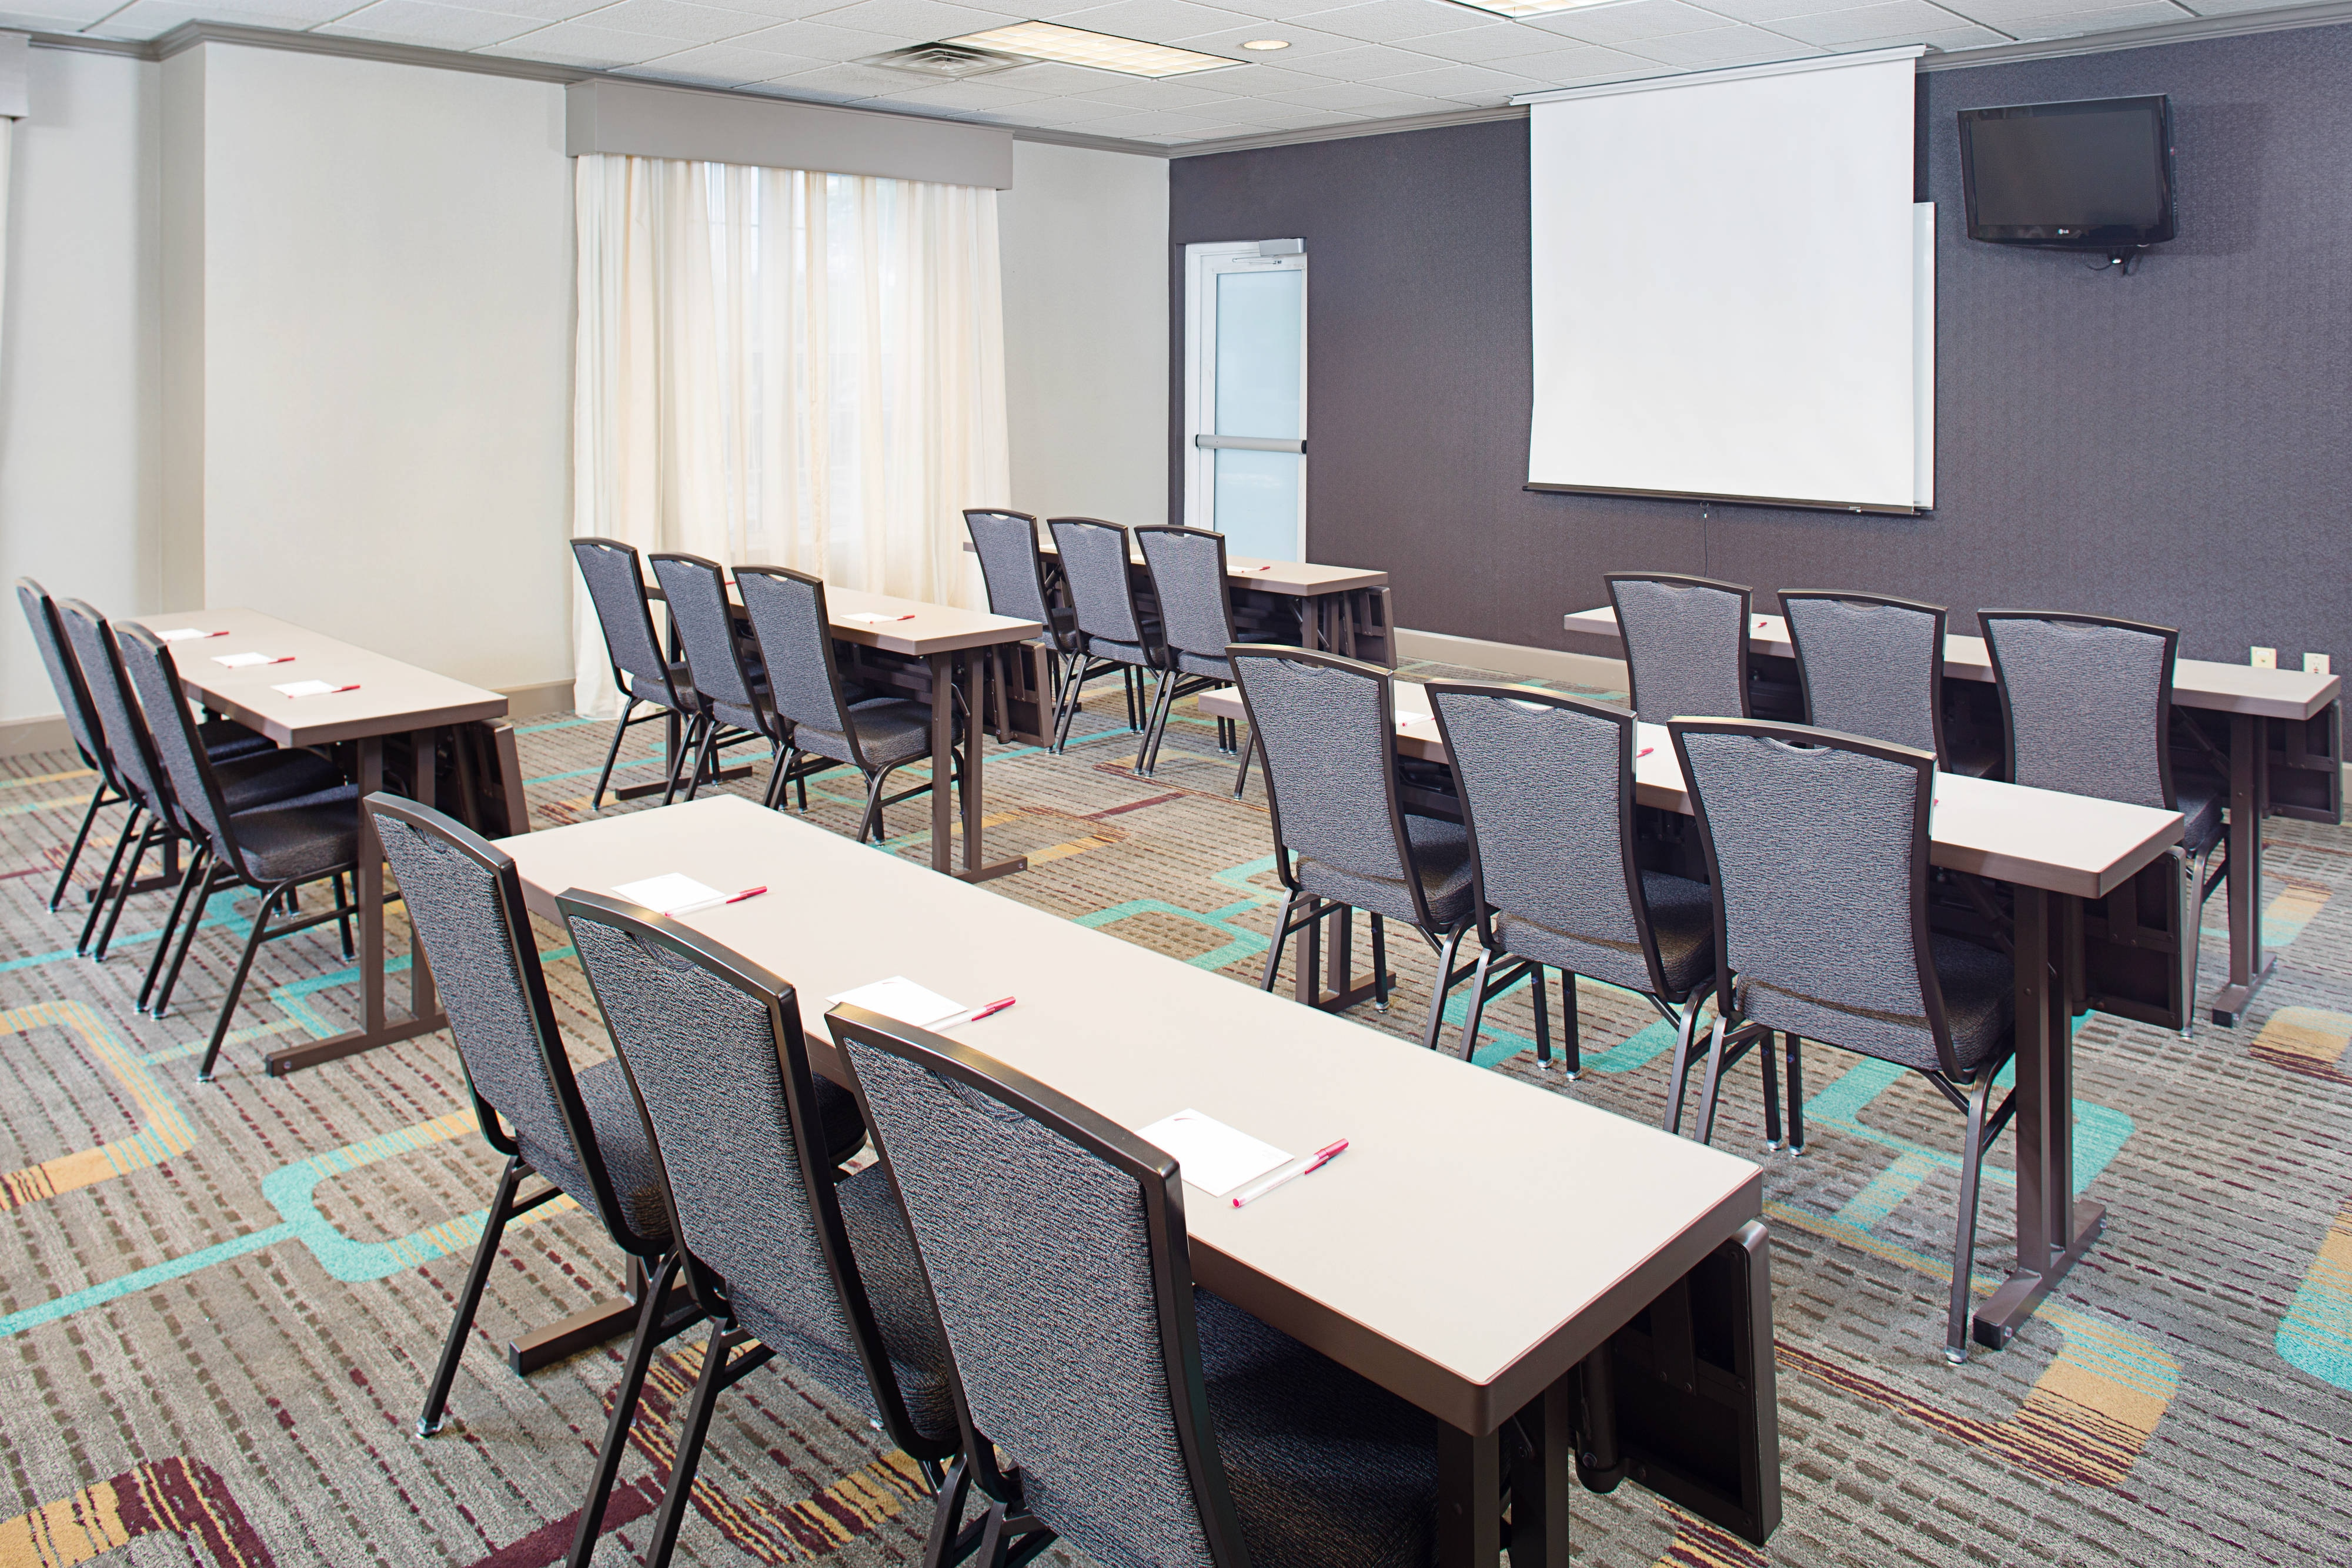 Meeting Room – Classroom Setup